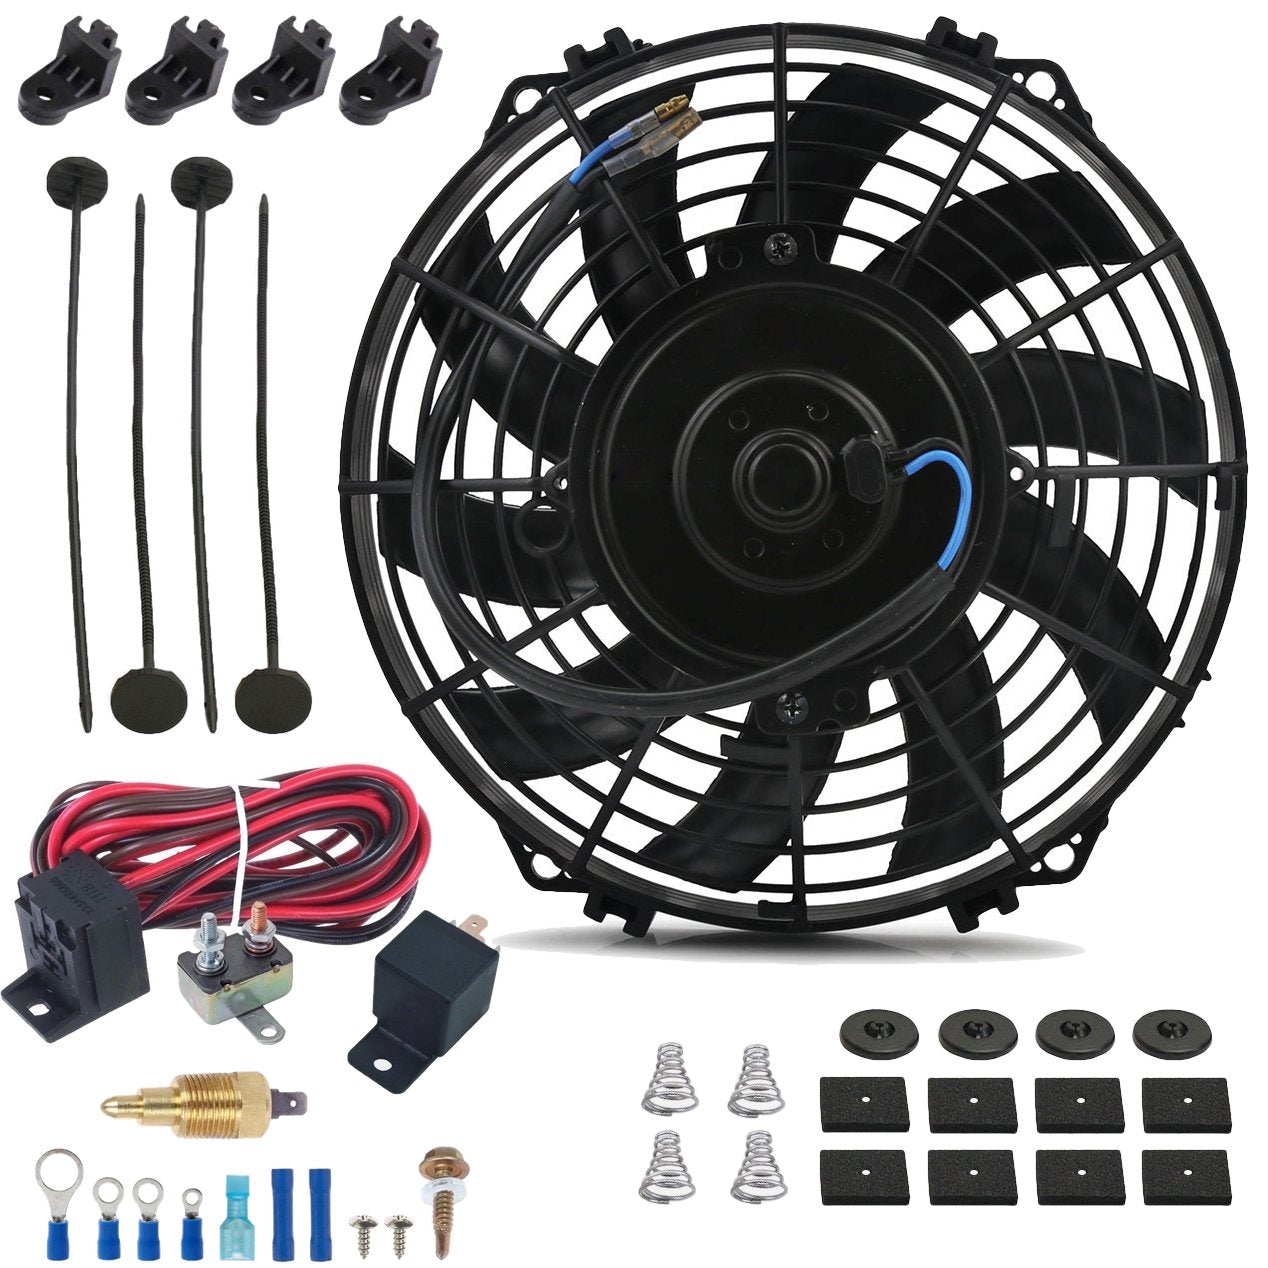 "9"" Inch Electric Fan 12 Volt Engine Cooling Thread-In Grounding Thermostat Switch Kit-Single Electric Fans-American Volt-1/8"" NPT-140'F On - 125'F Off-American Volt"